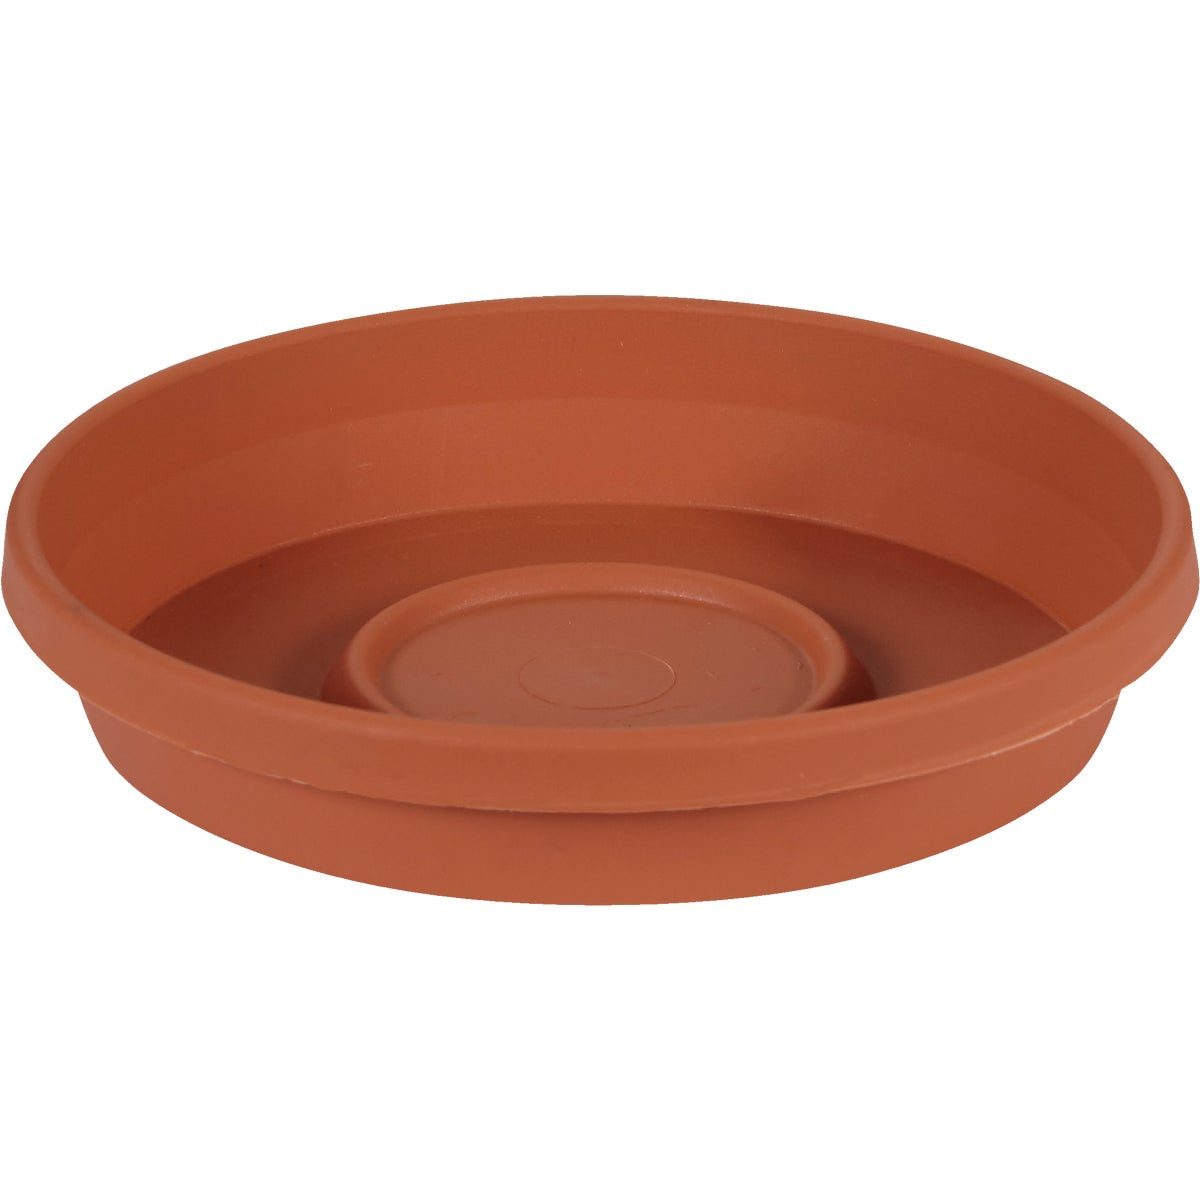 "6"" CLAY POLY SAUCER - 51006C by Fiskars Brands Inc"